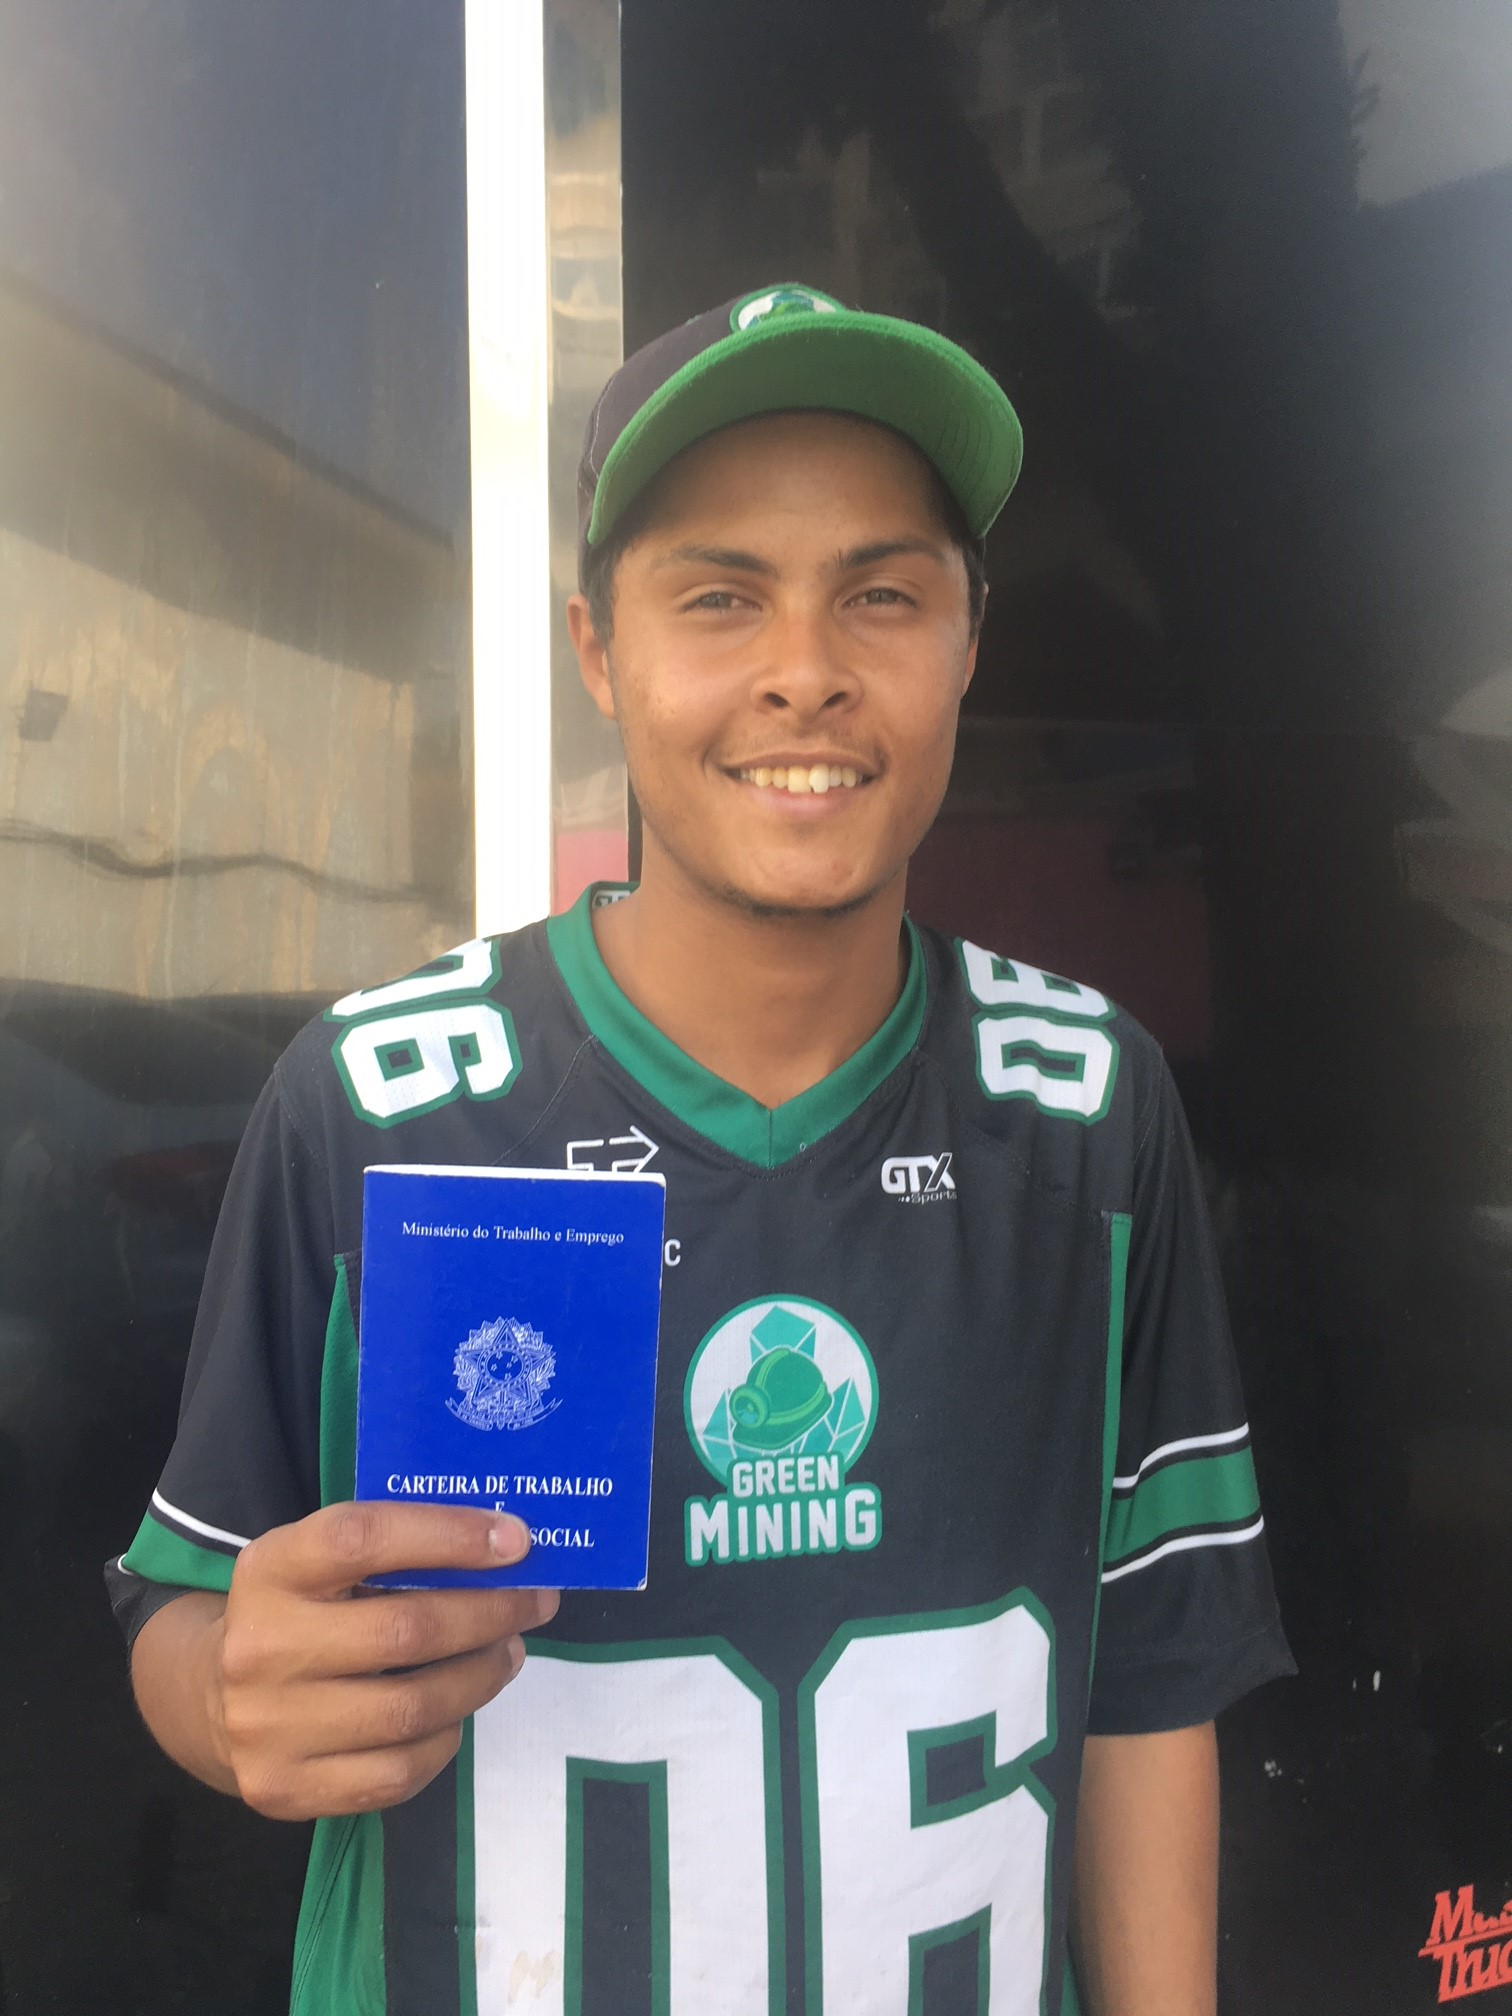 The young <strong>Renan Pereira Mattos</strong> has been with Green Mining since December 2018 and goes to Accounting college at night.